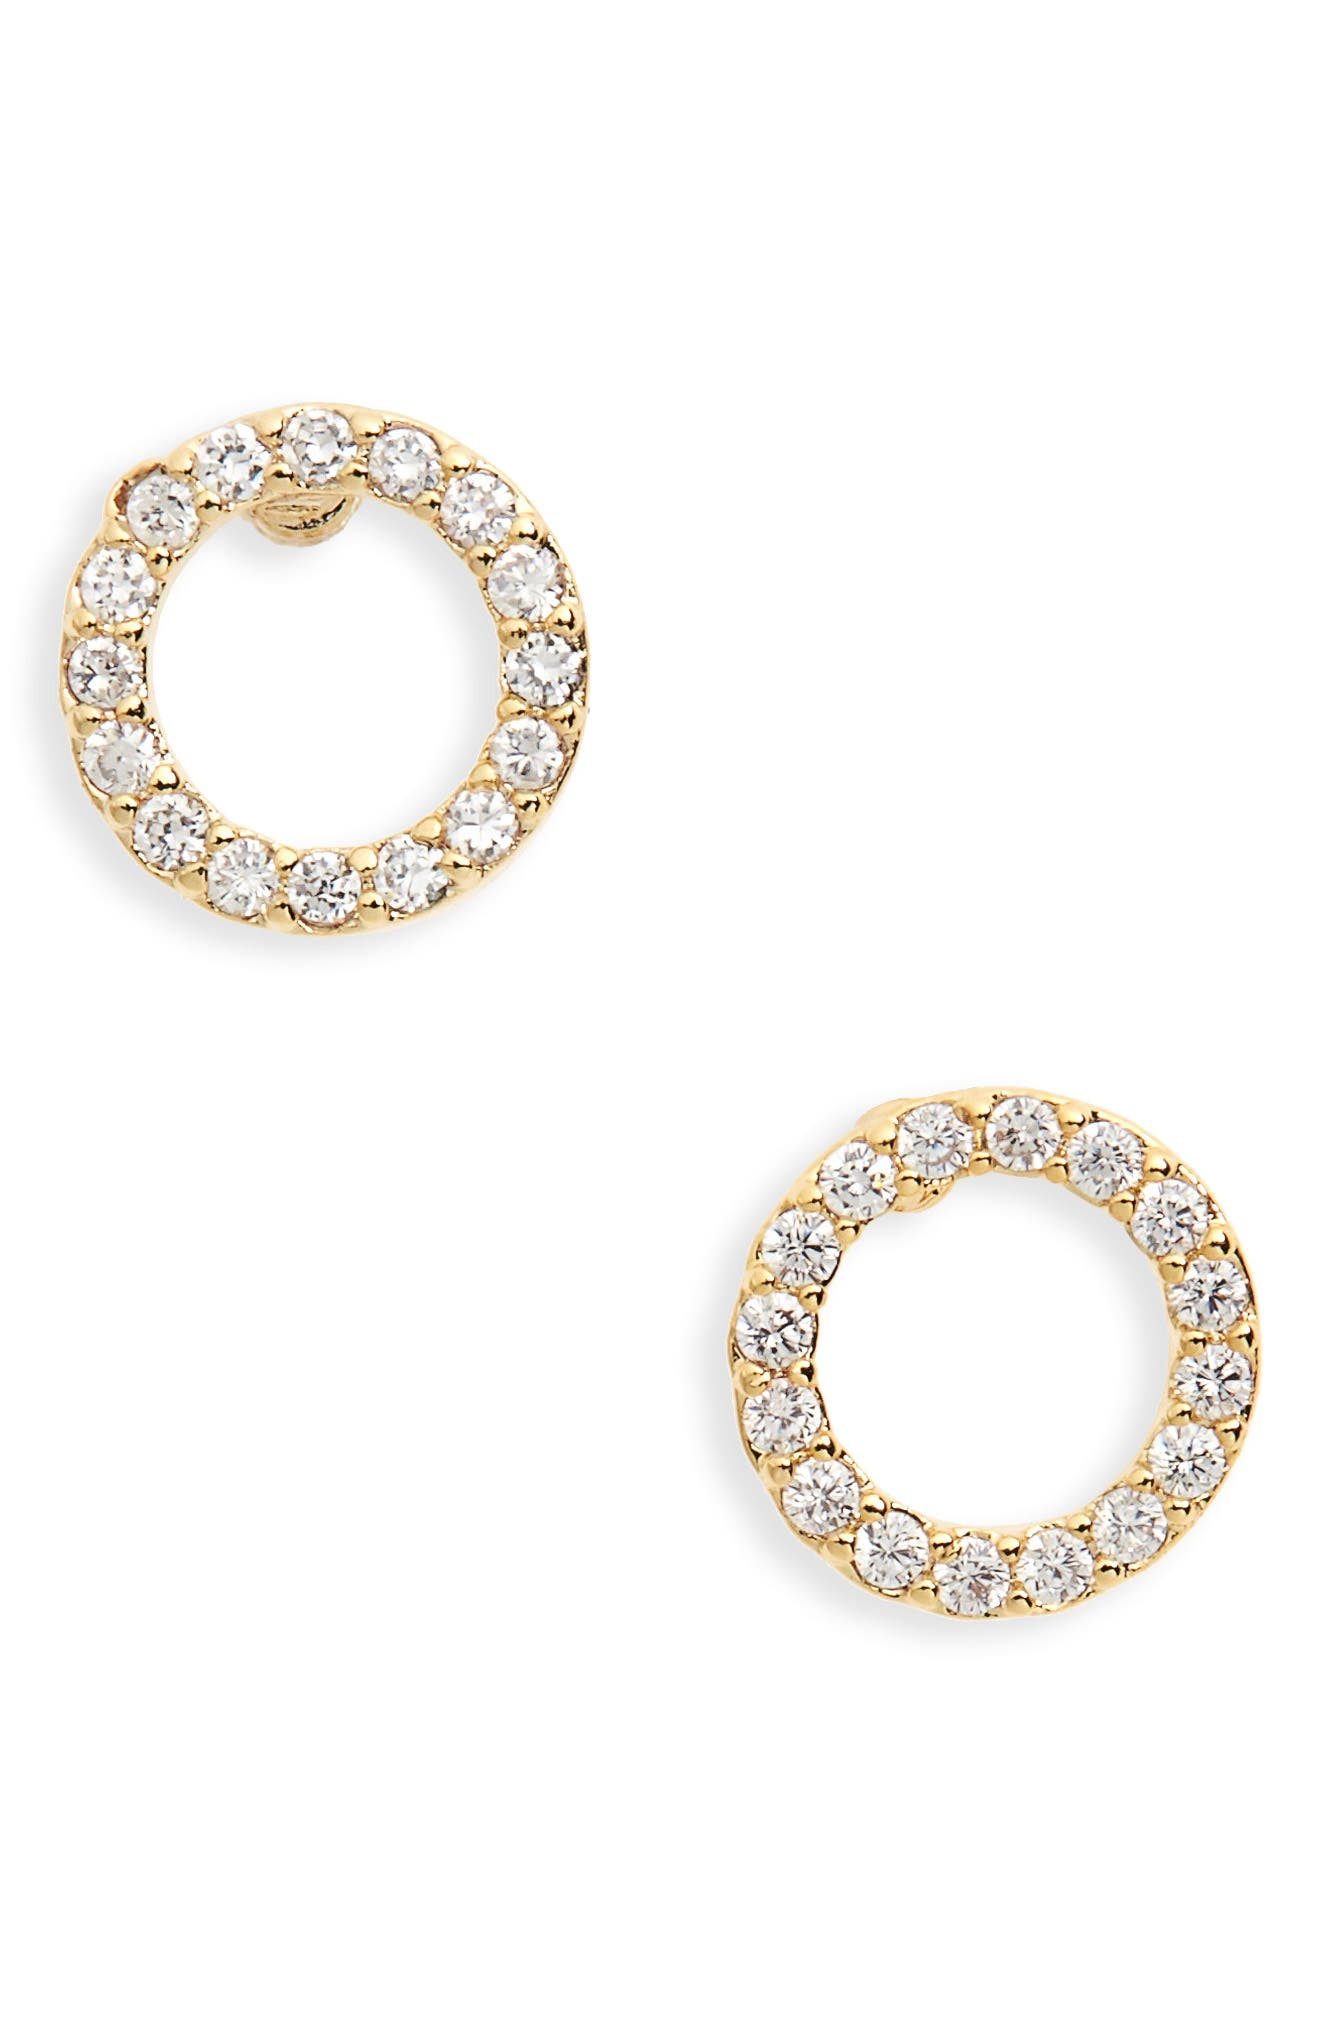 Cubic Zirconia Circle Earrings,                         Main,                         color, GOLD